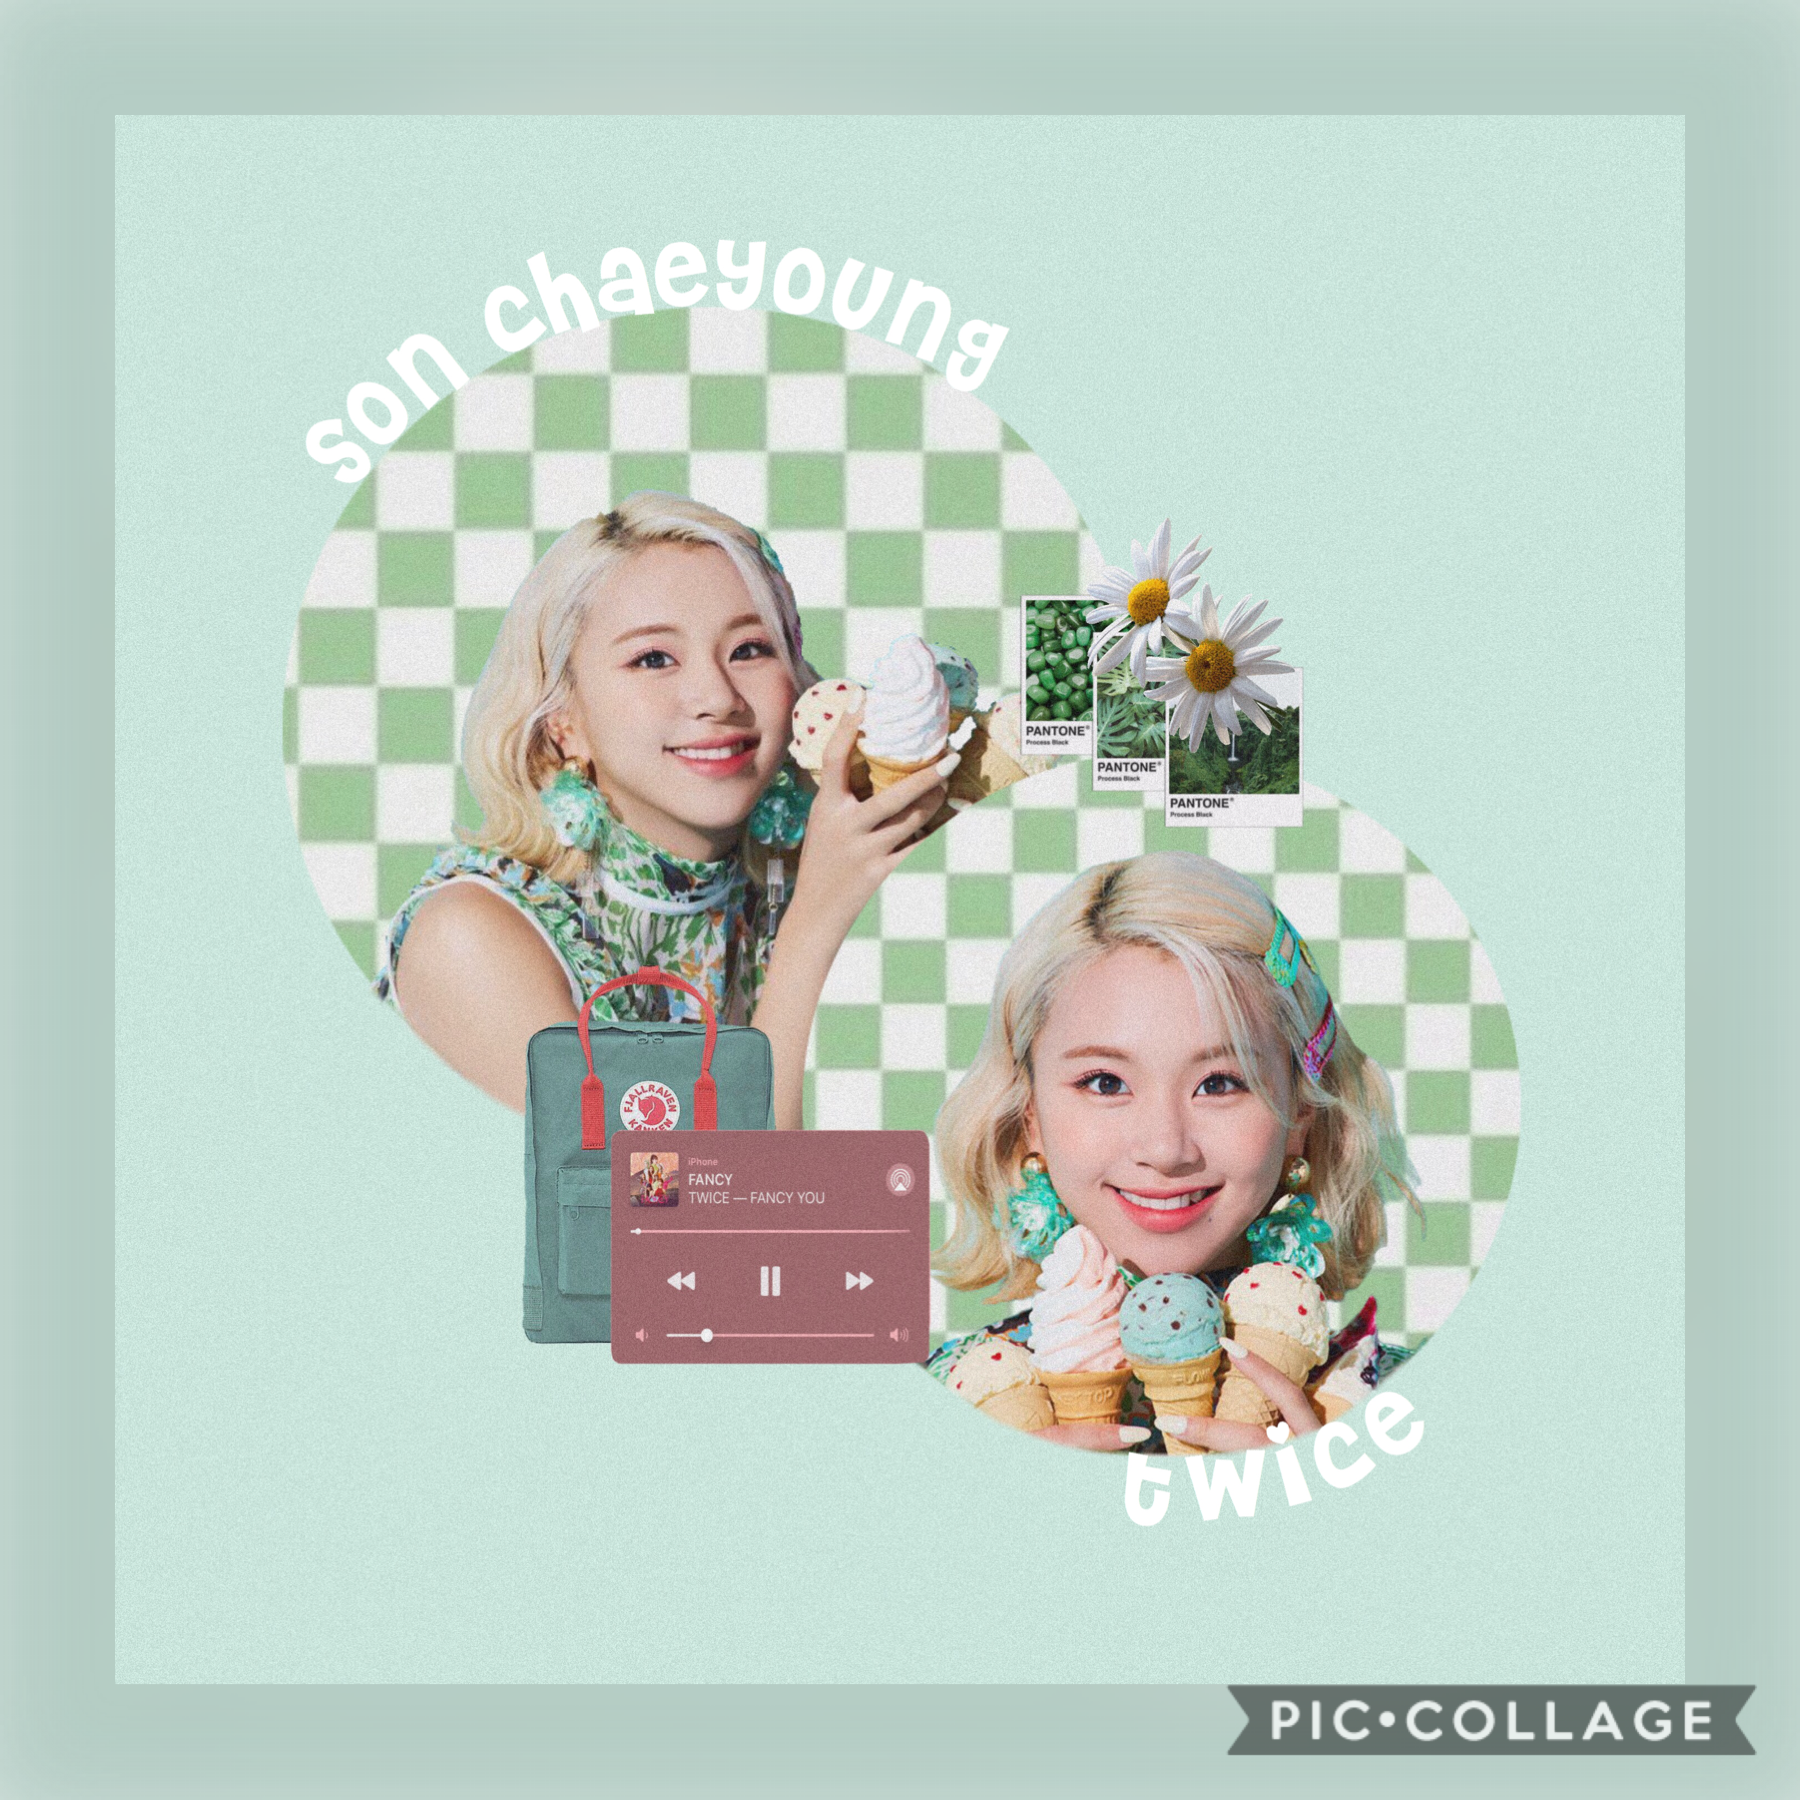 💚 happy birthday chaeyoung~ expect another edit coming soon :)) stay safe 💚 i fancy y'all 🤟🏼